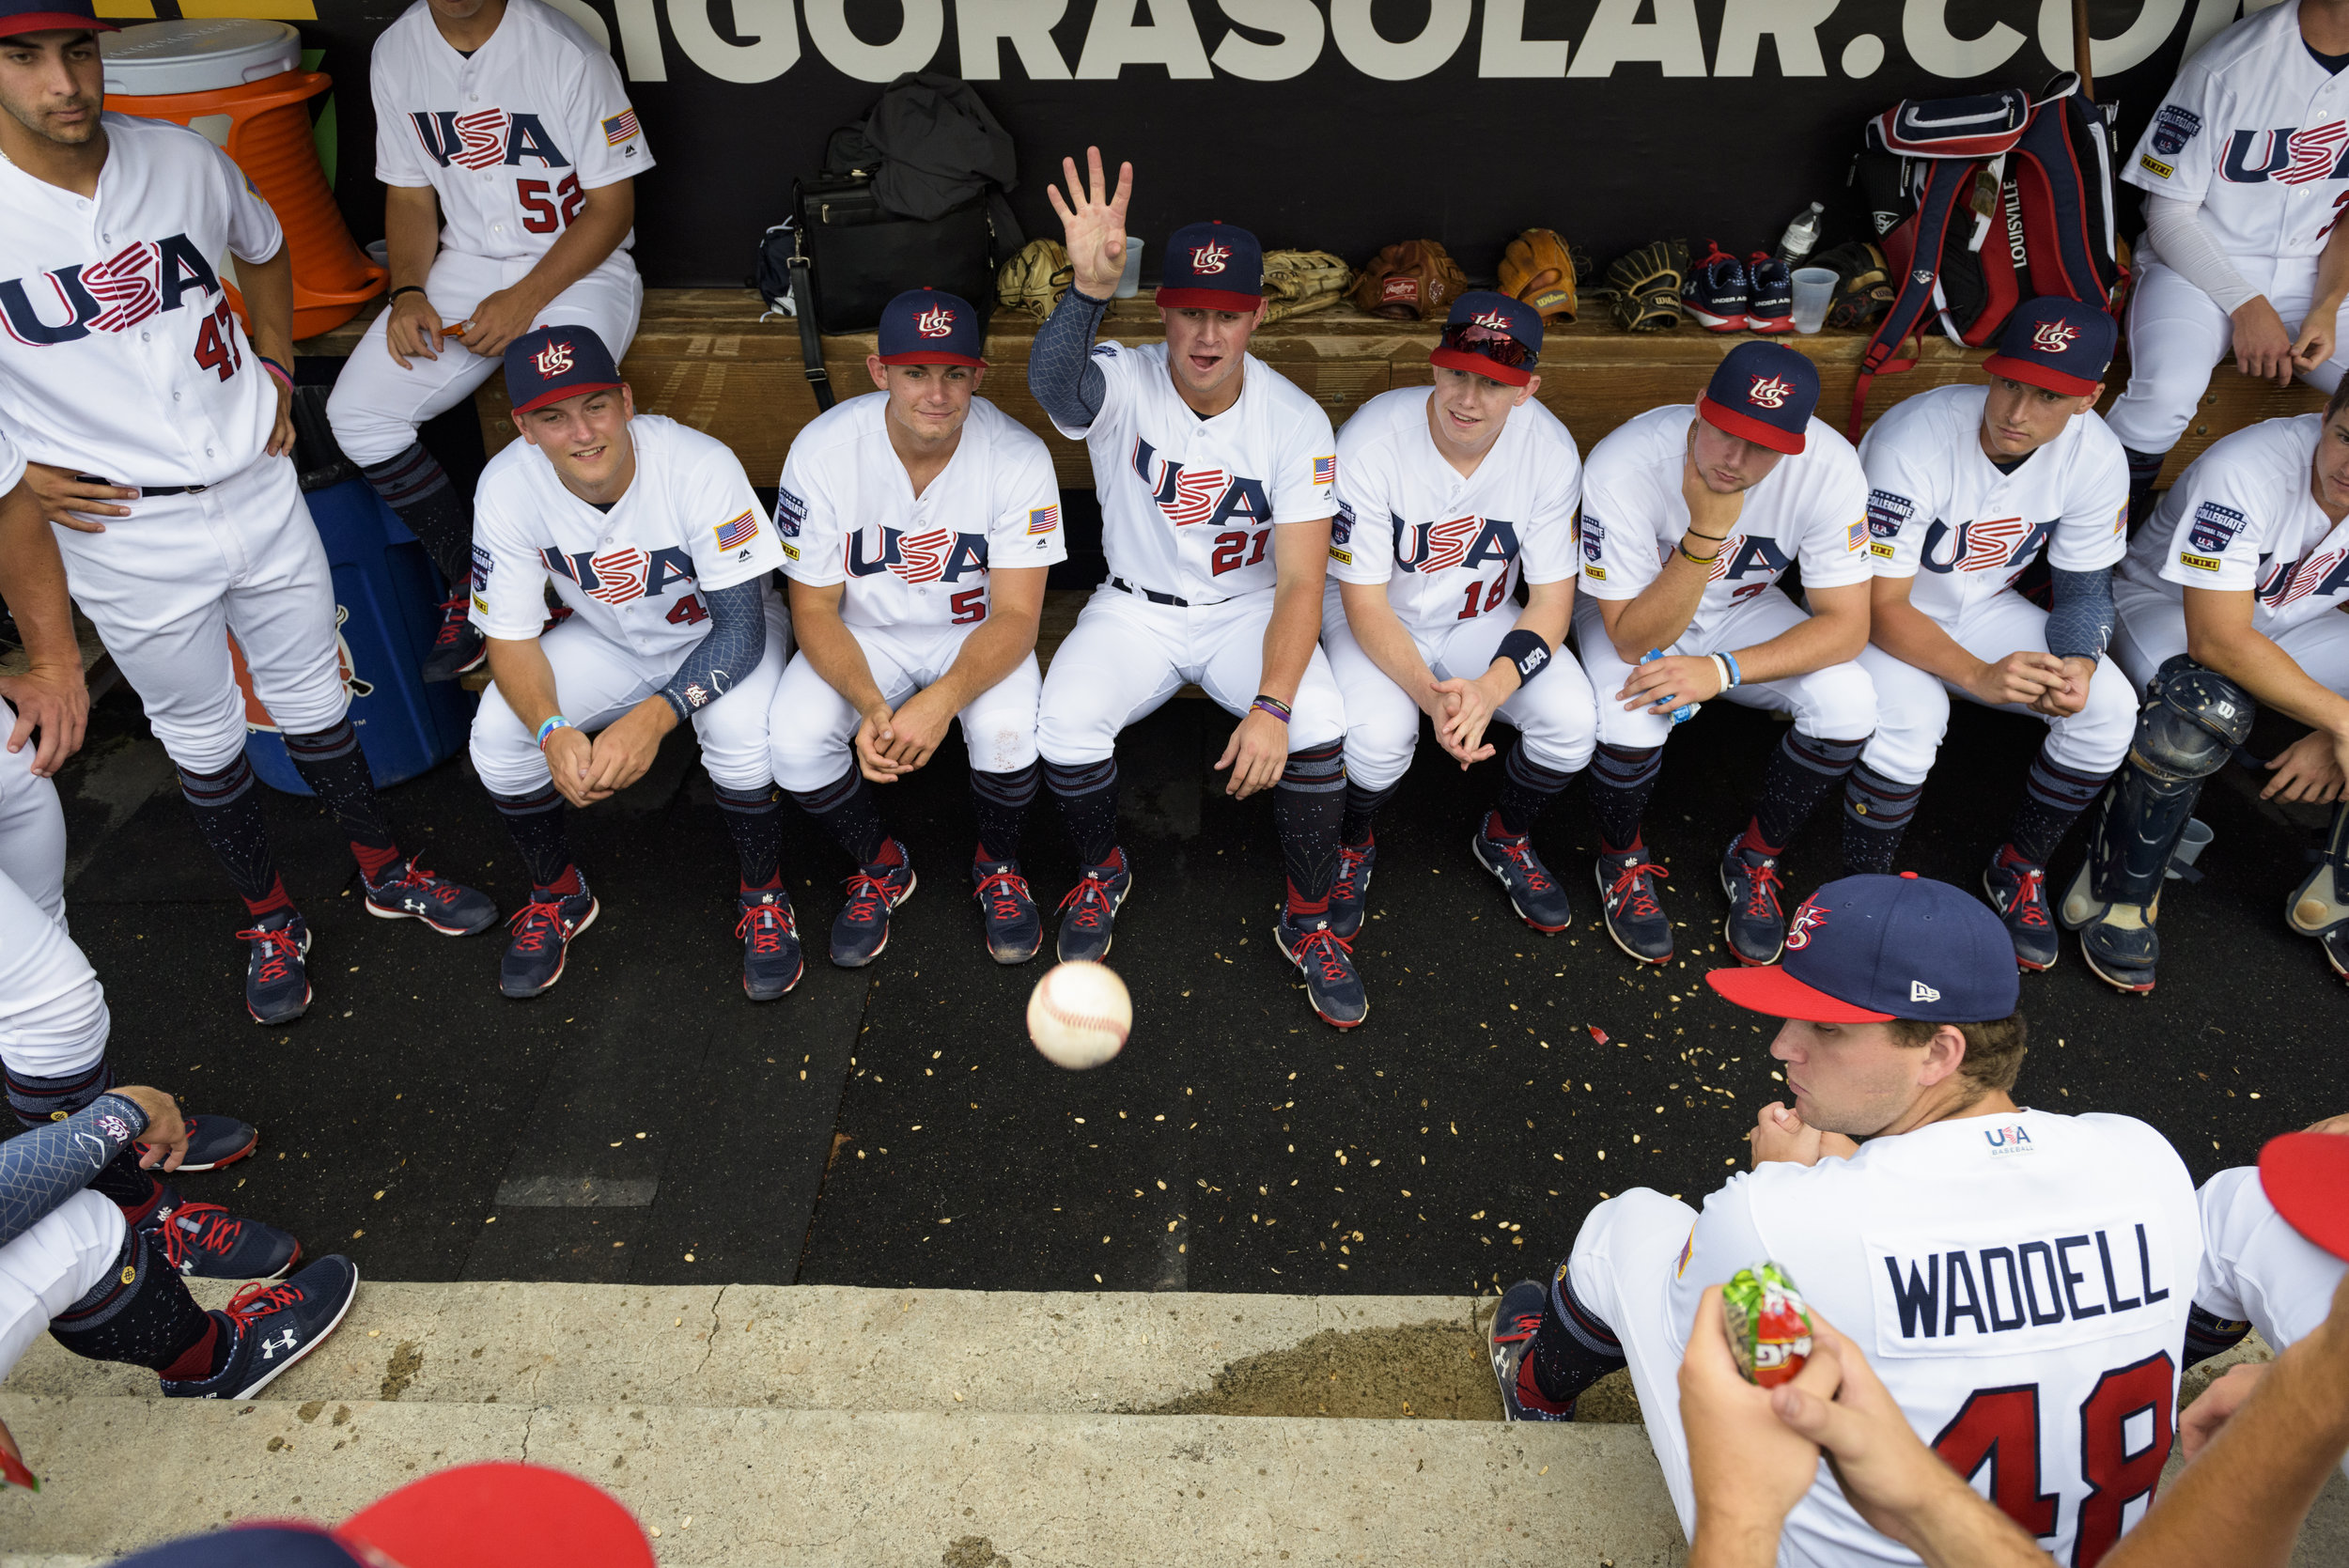 Team USA players pass time in the dugout during a rain delay on July 4, 2019 at Durham Bulls Athletic Park in Durham, NC. The USA Baseball Collegiate National Team was playing Cuba as part of the 8th Annual USA vs. Cuba International Friendship Series.